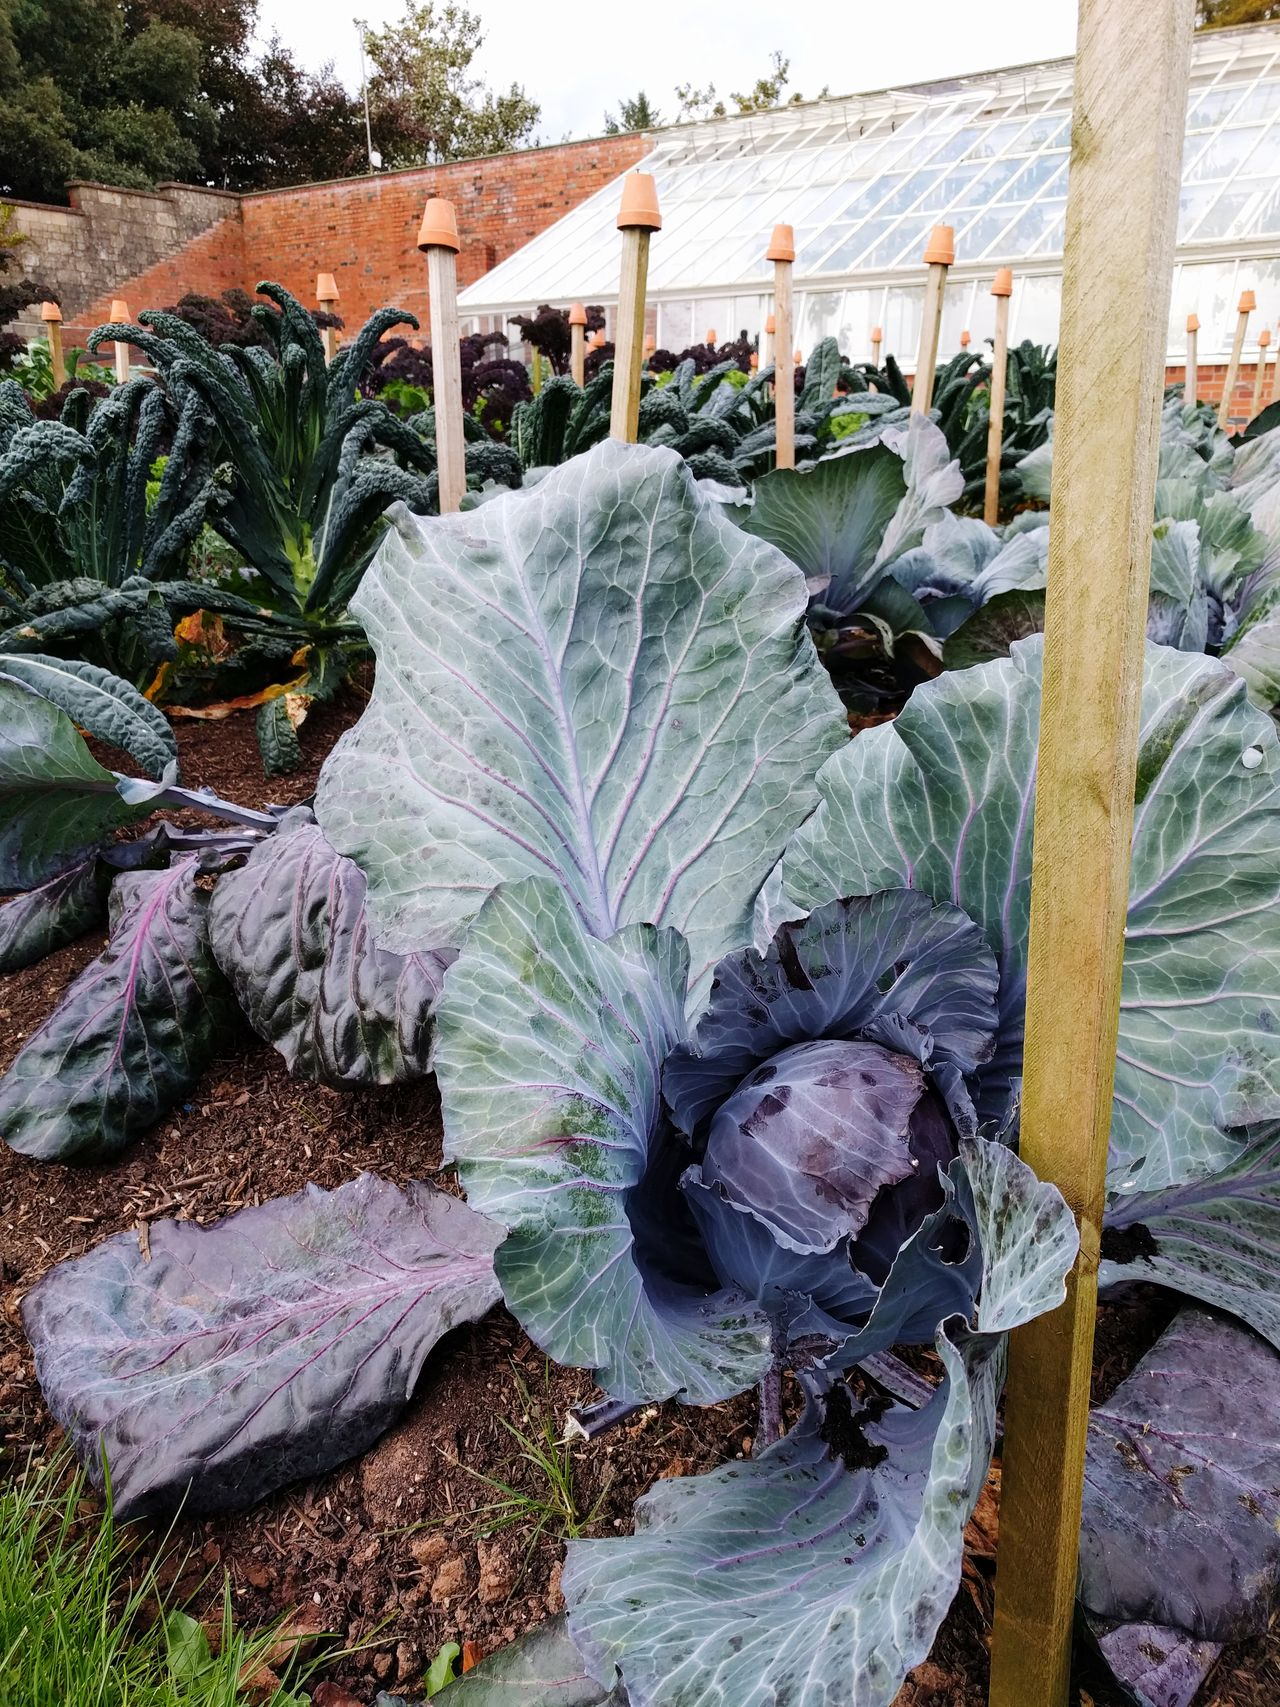 Giant cabbage!